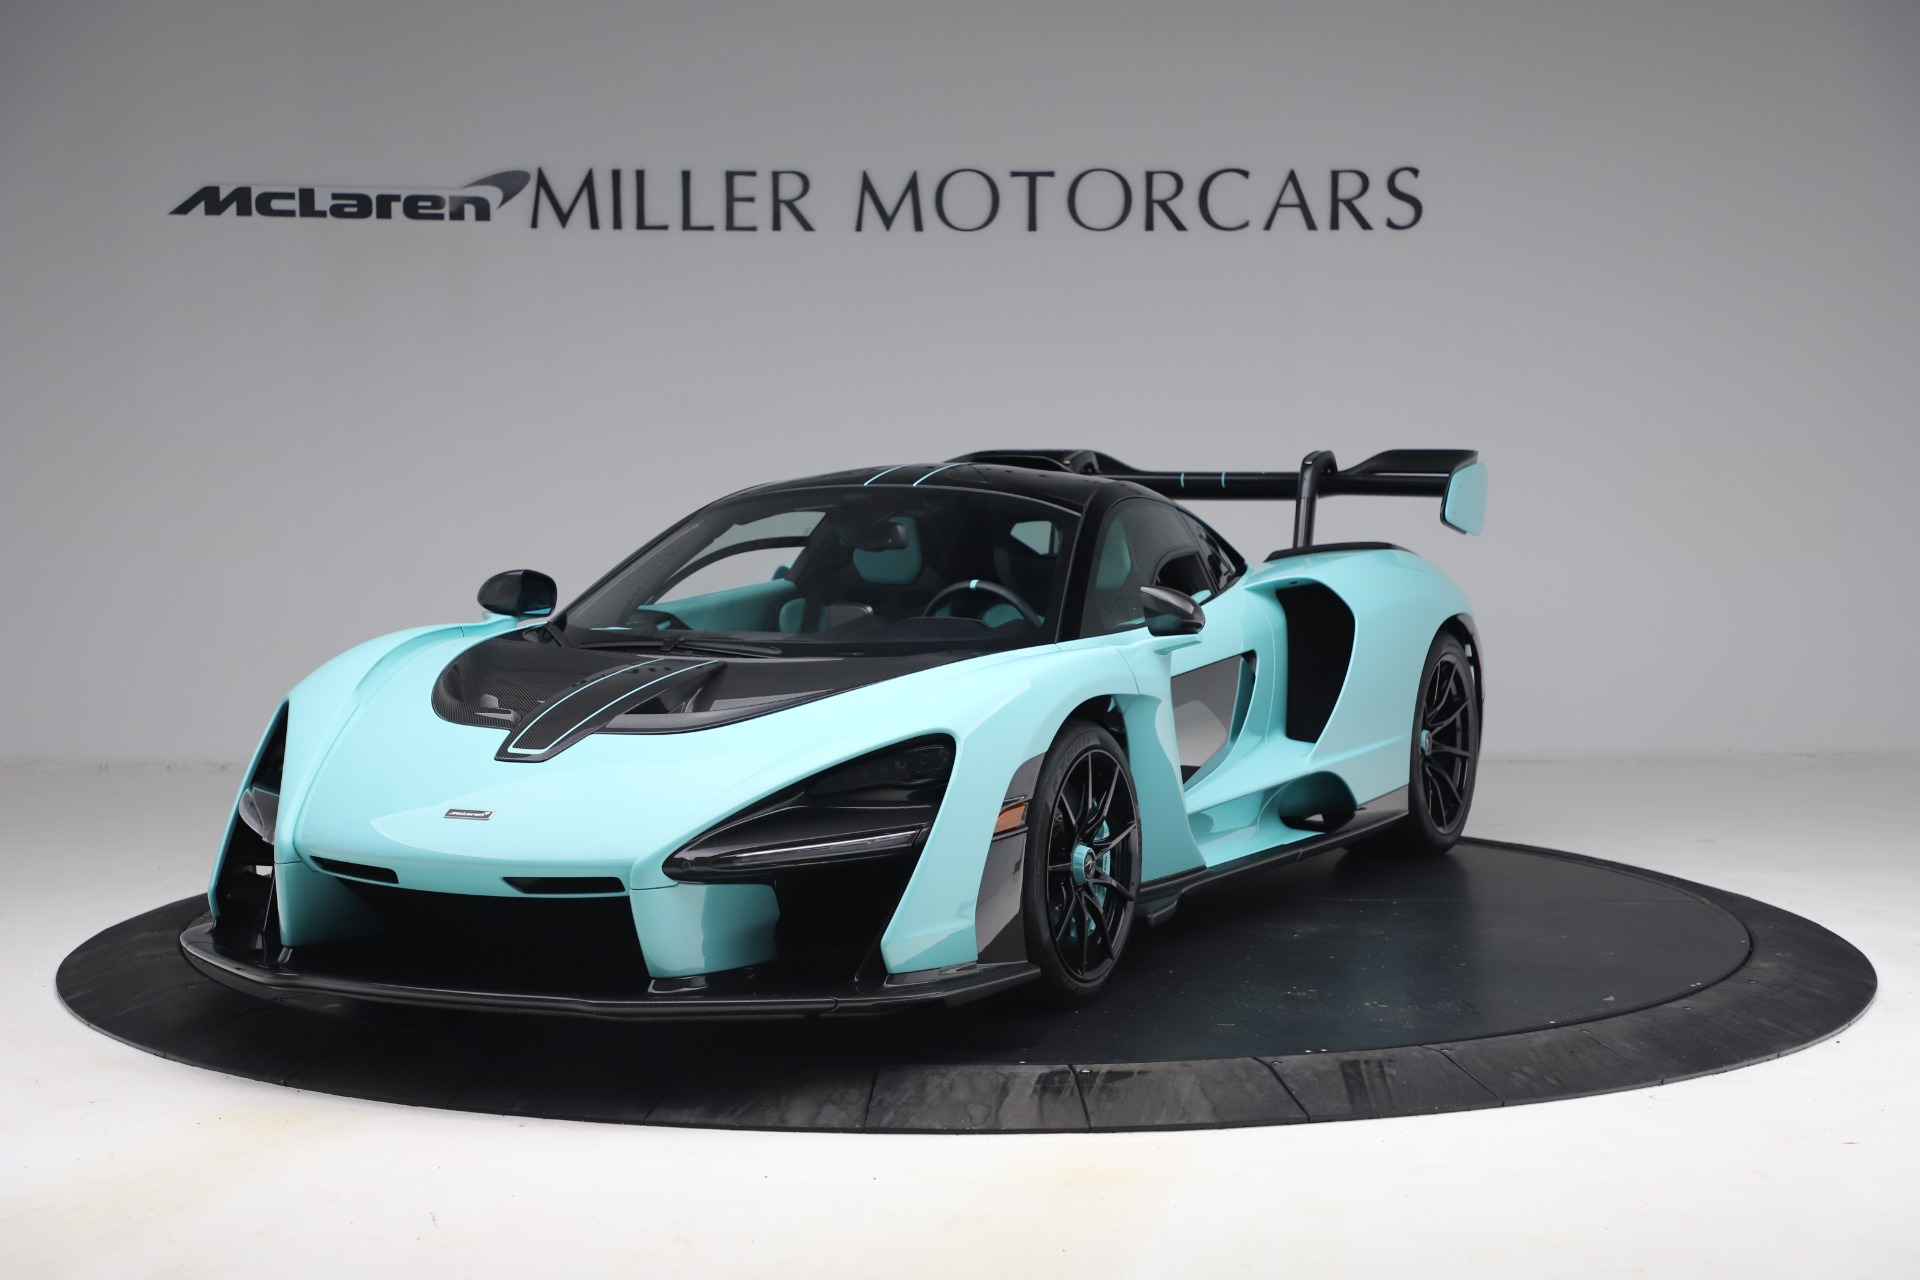 Used 2019 McLaren Senna for sale Sold at Pagani of Greenwich in Greenwich CT 06830 1